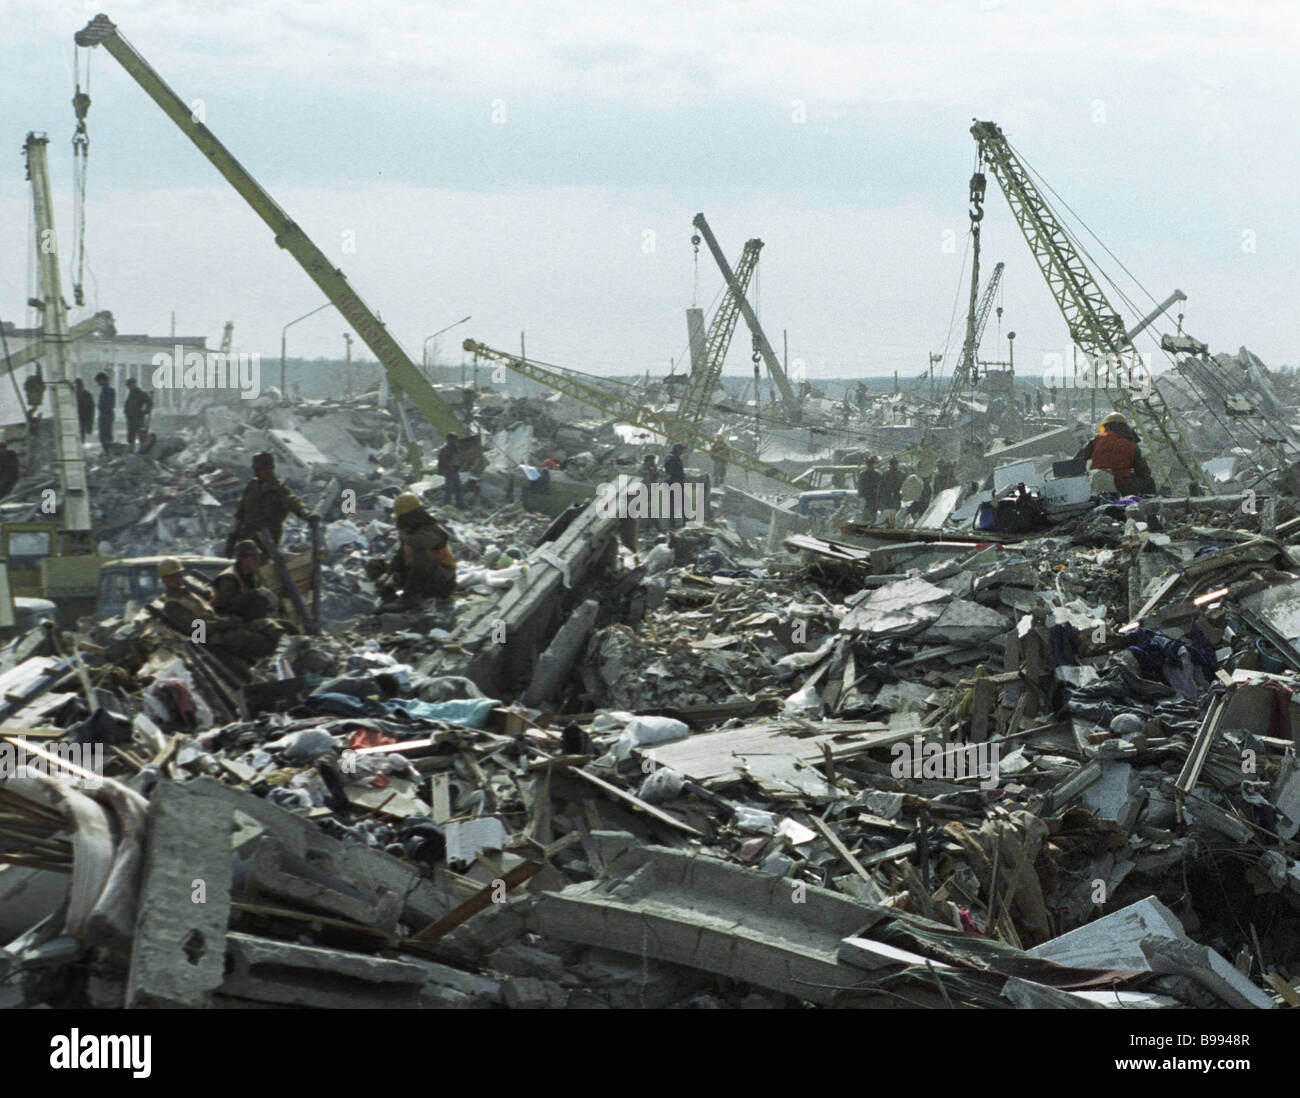 The city of Neftegorsk completely ruined by an earthquake - Stock Image